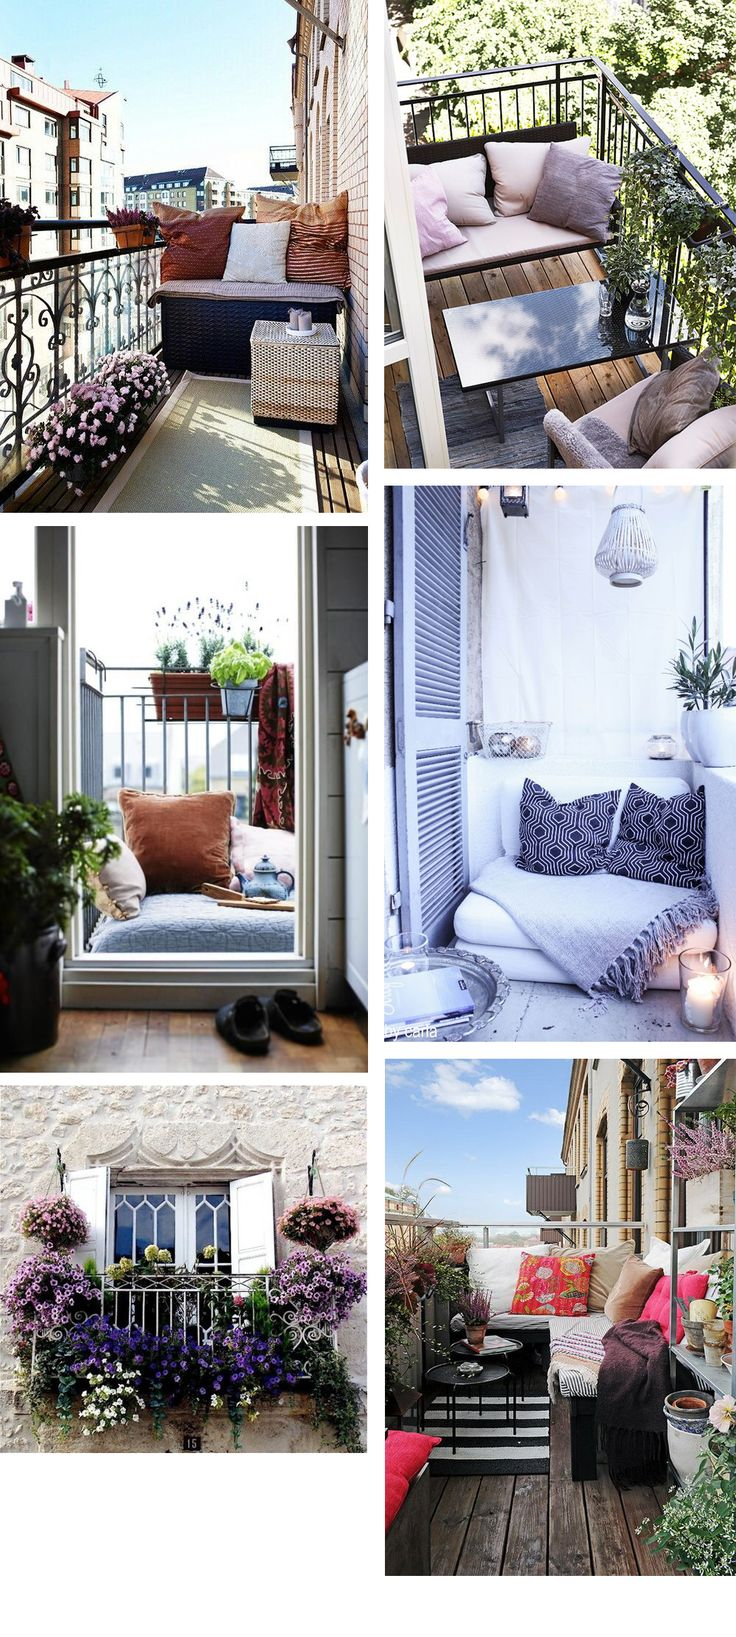 Mattresses why not hanging on the balcony garden compact seating - 5 Tips For Small Balconies